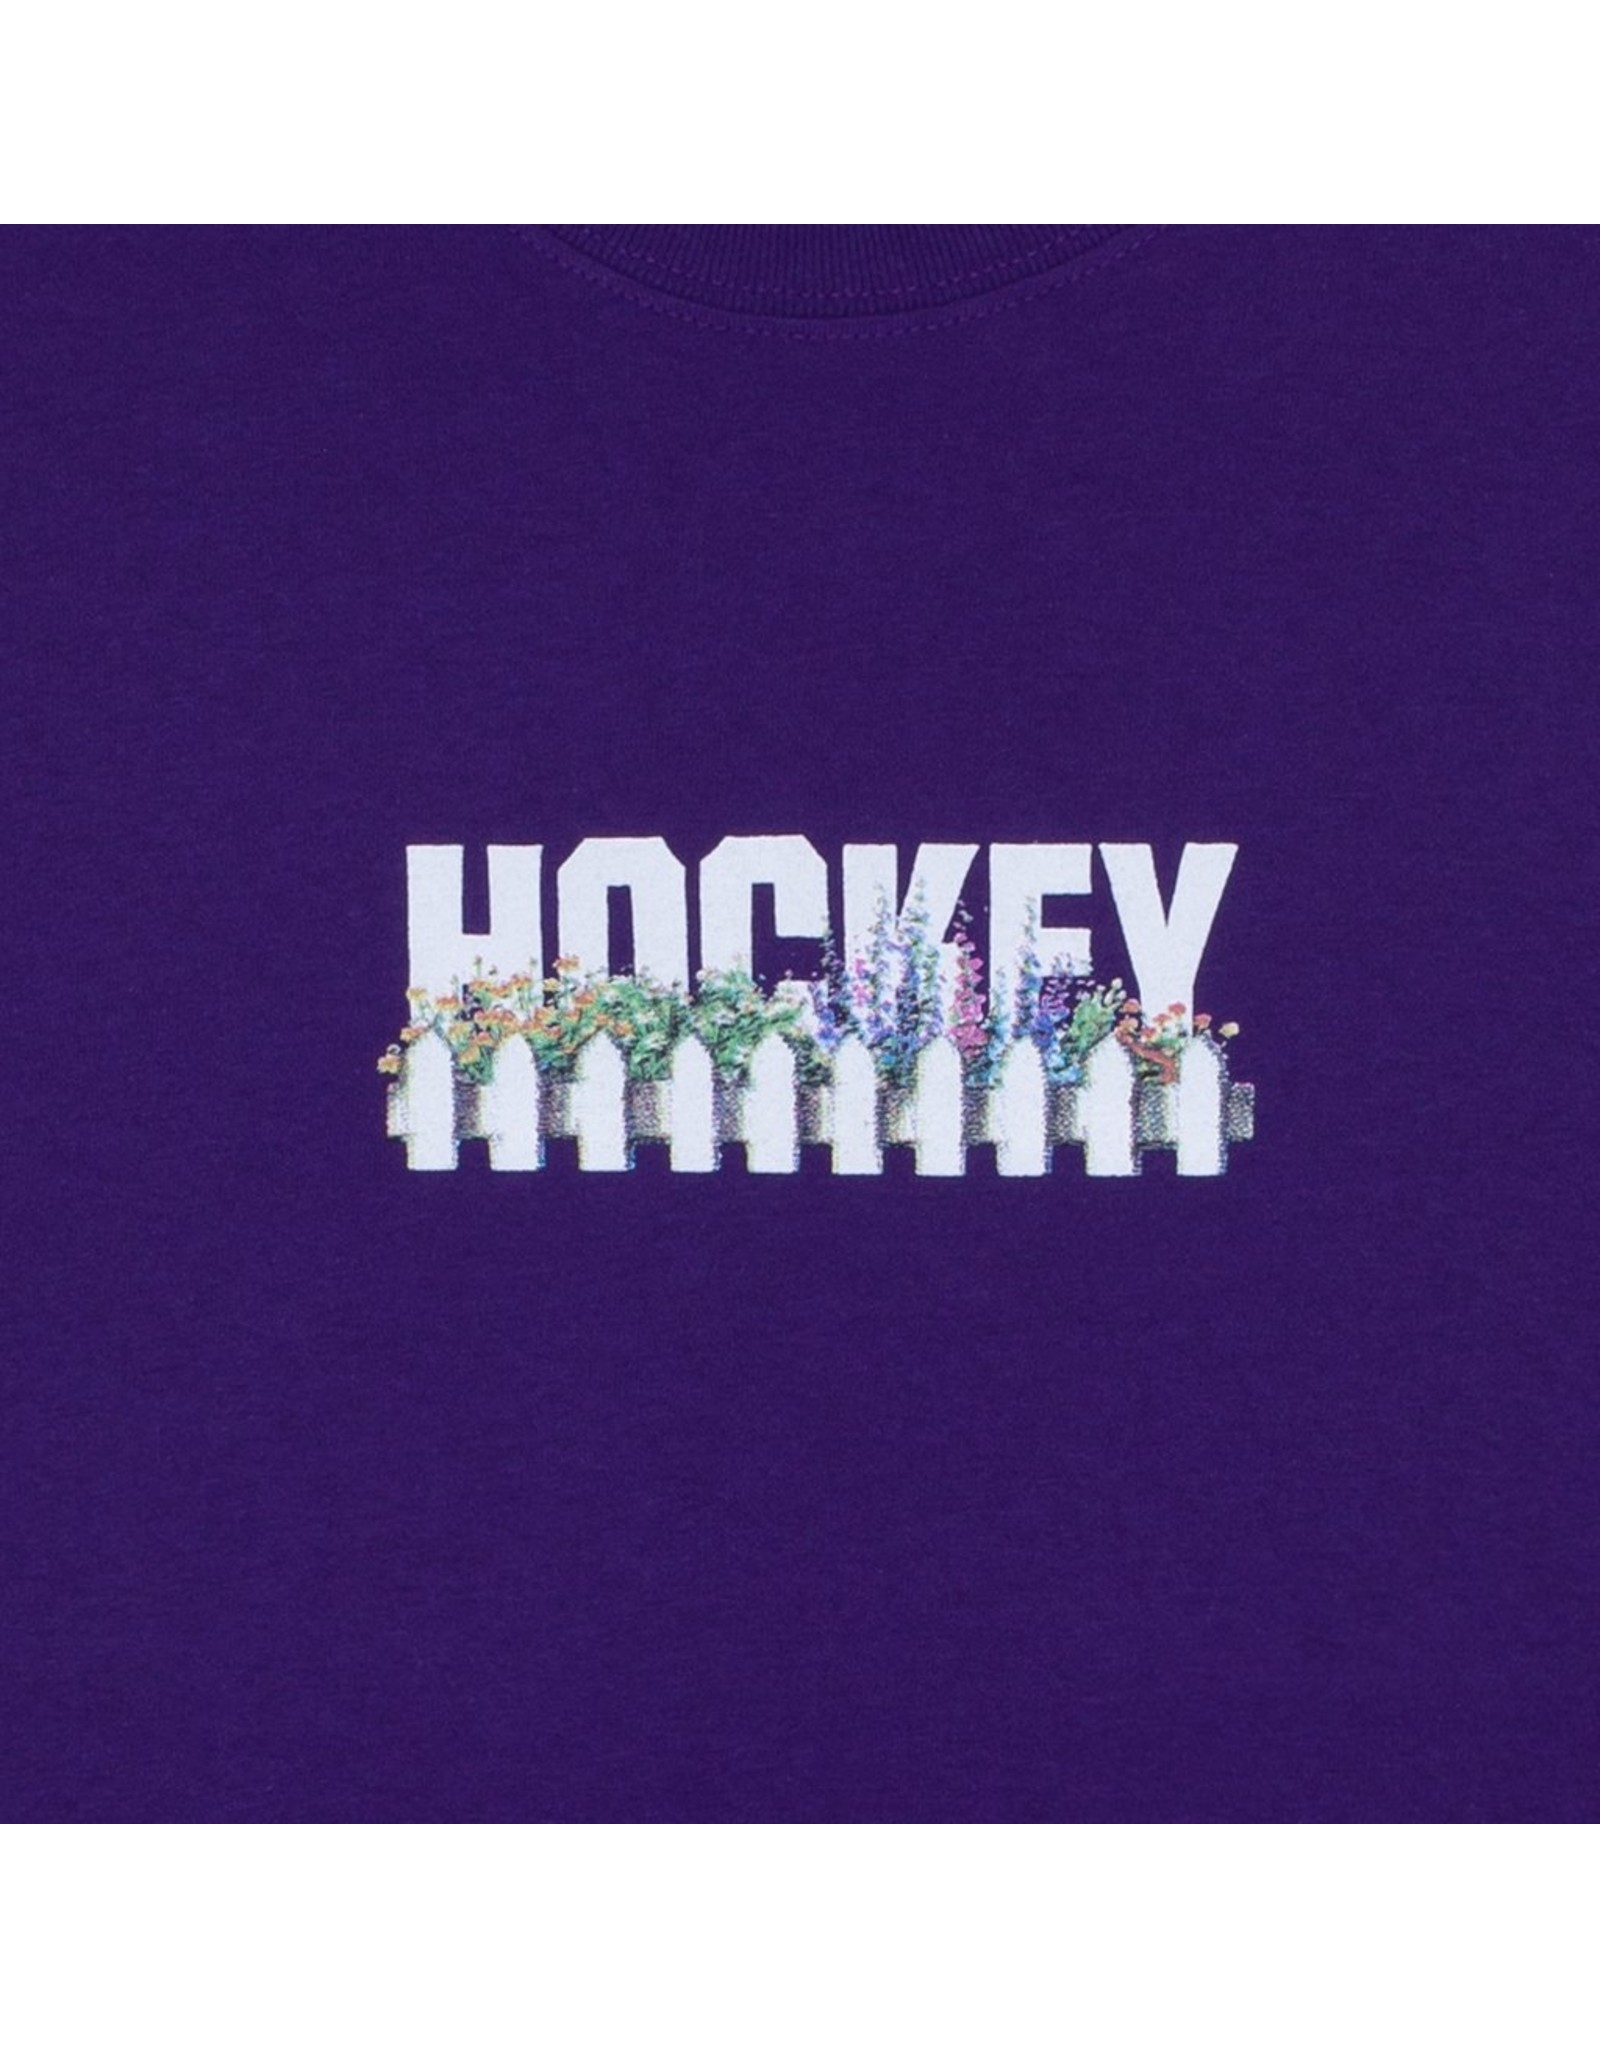 HOCKEY HOCKEY - NEIGHBOUR TEE - PURPLE